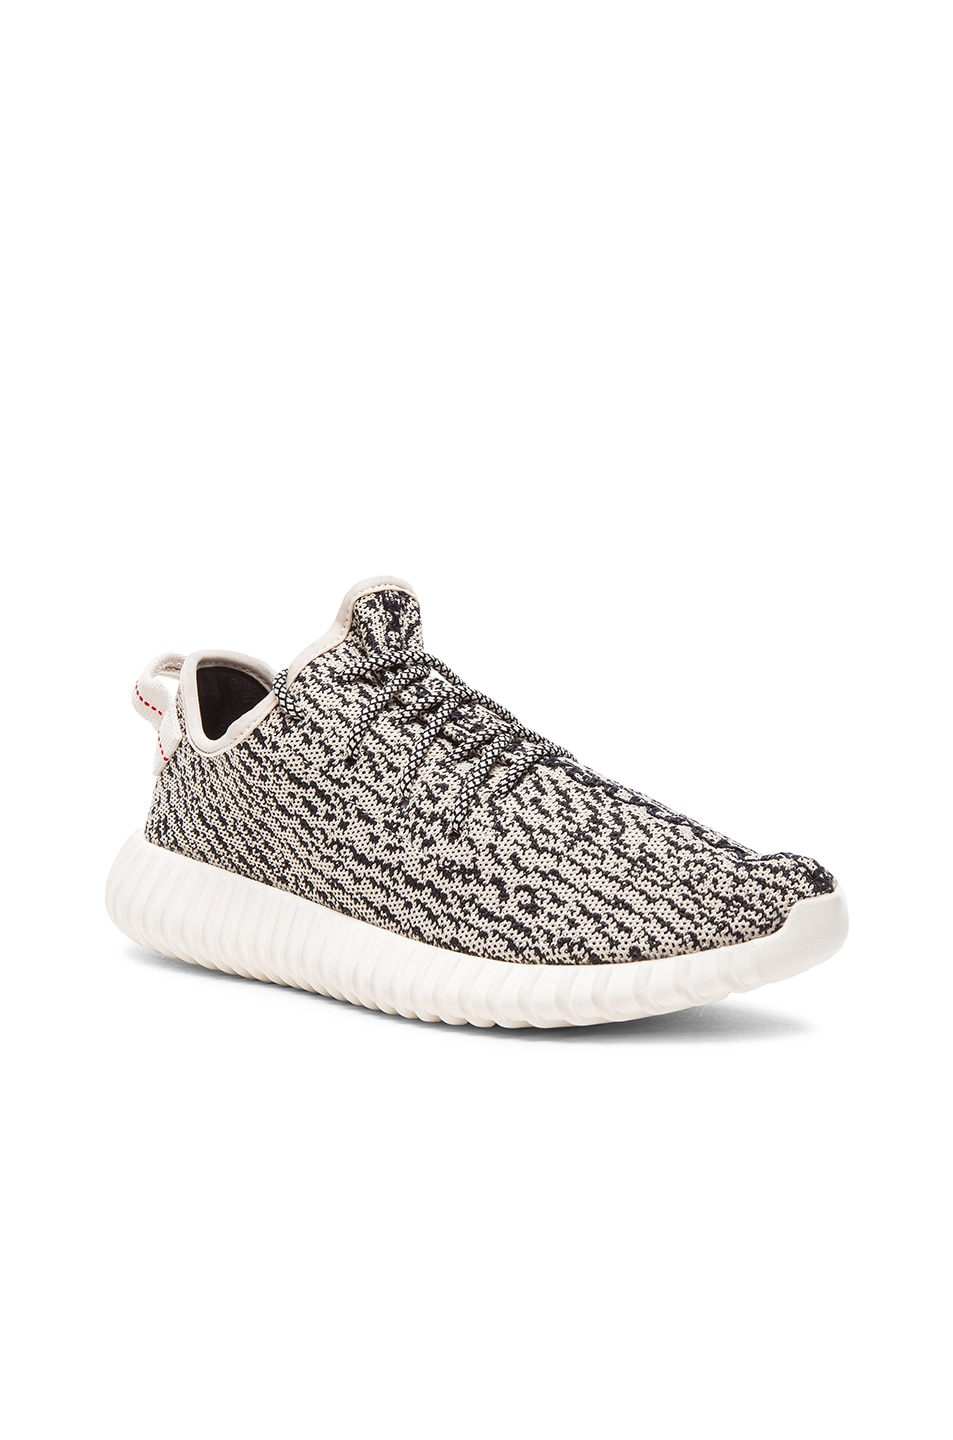 lowest price f4e78 db586 Image 1 of Kanye West x Adidas Originals Yeezy Boost 350 in Turtledove